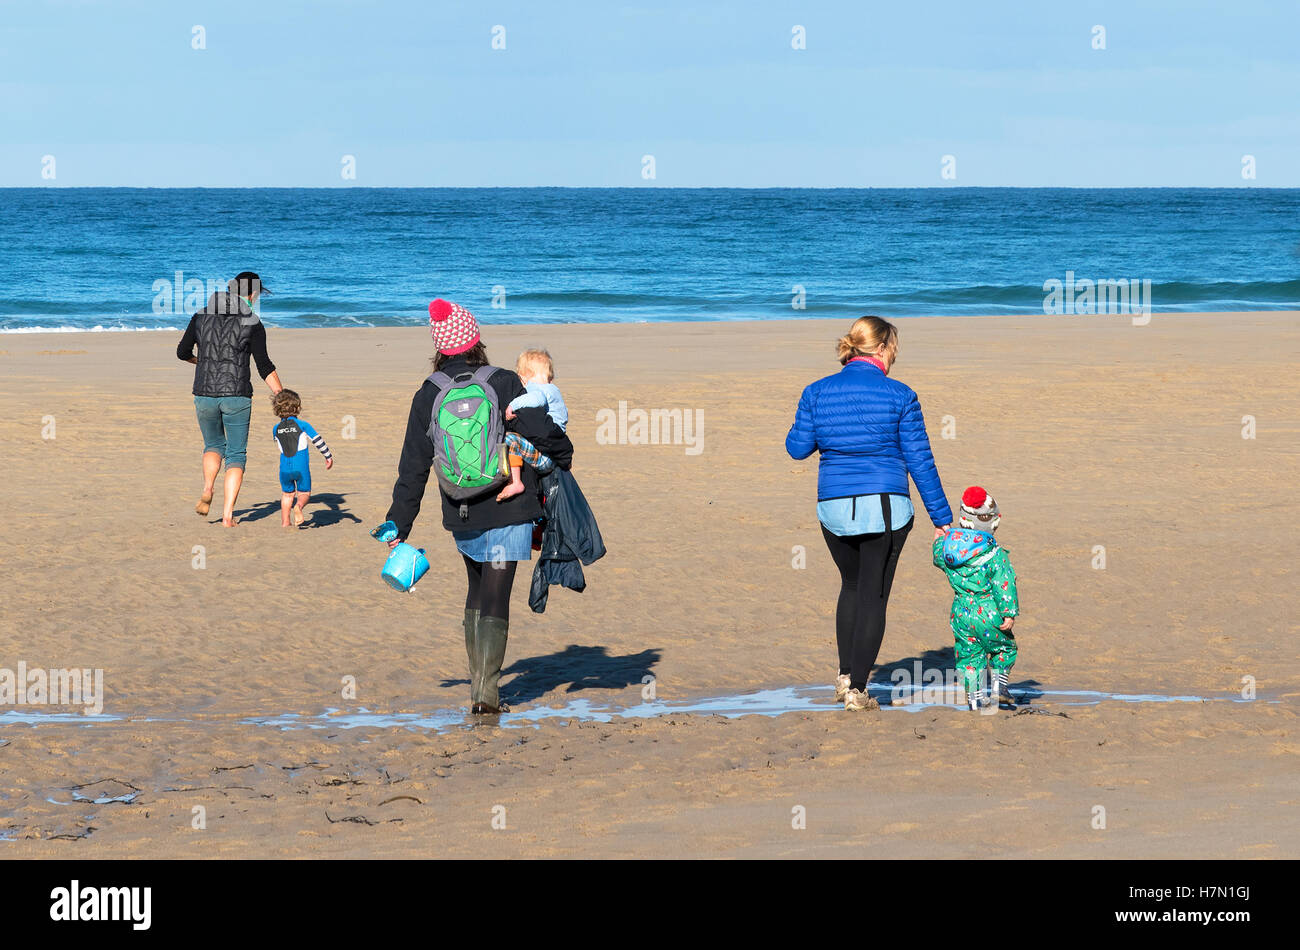 three young mothers on a beach in cornwall, uk, with their children. - Stock Image